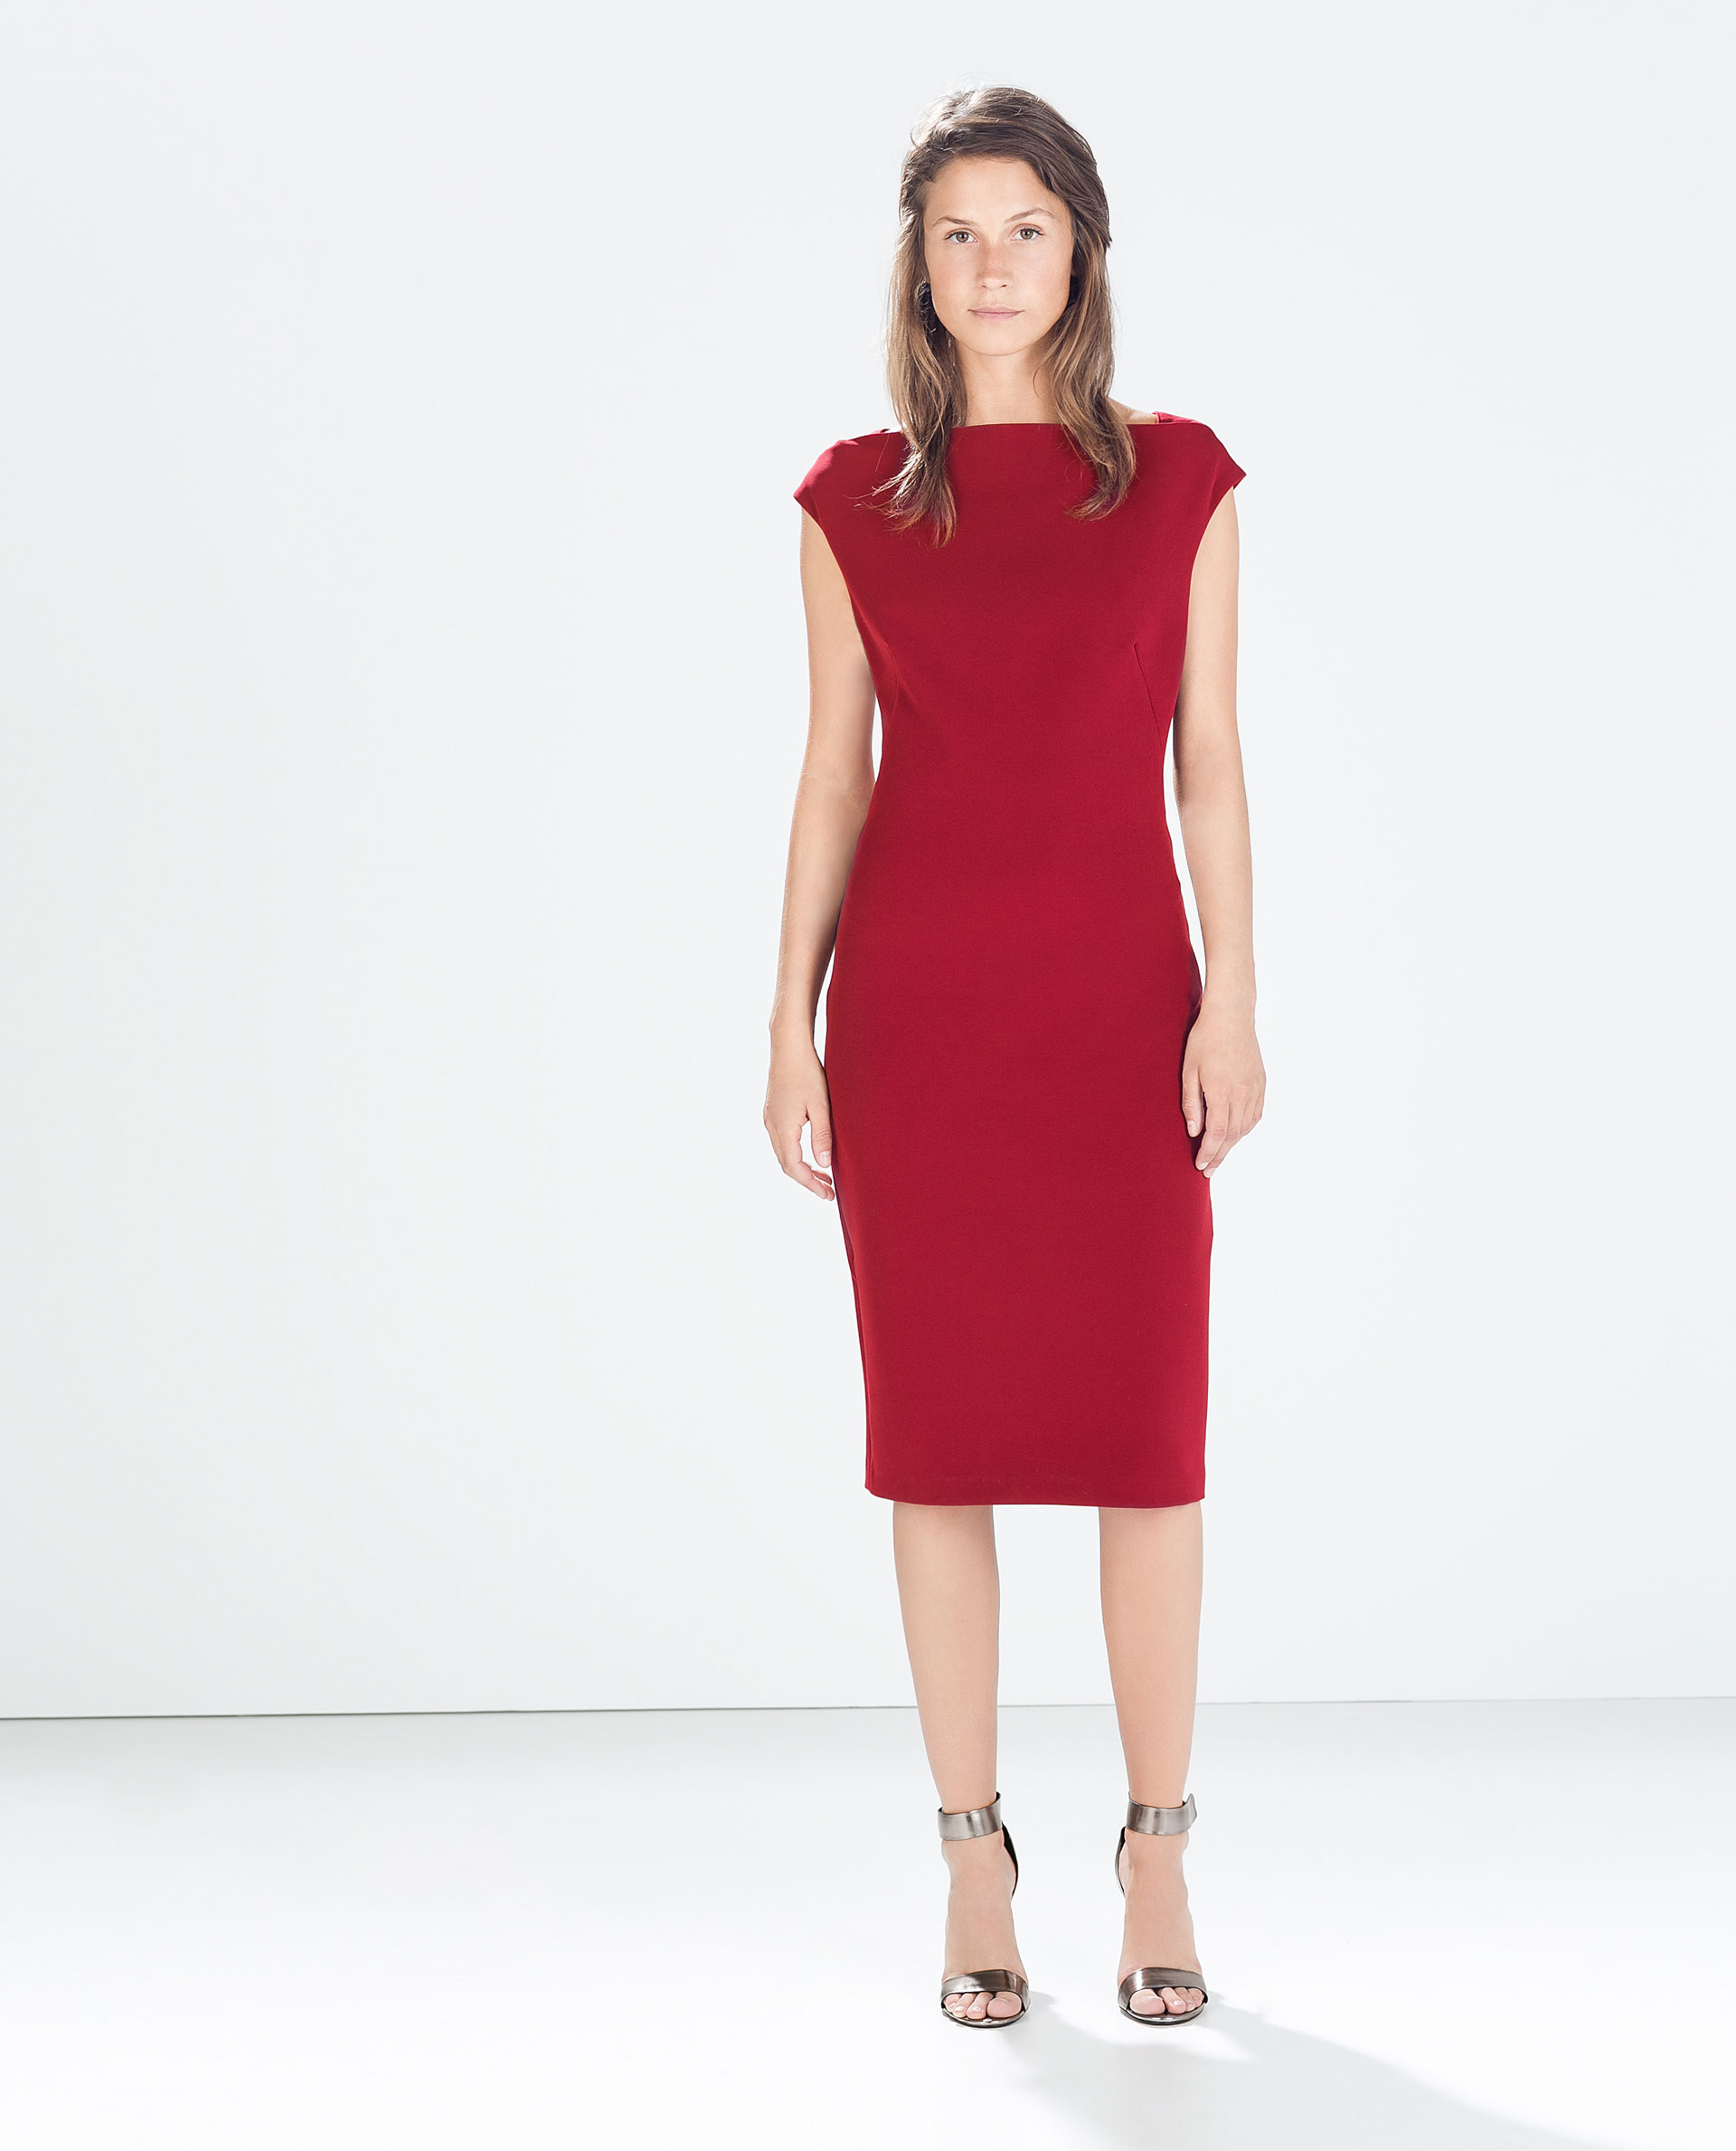 Zara Boatneck Tube Dress in Red - Lyst